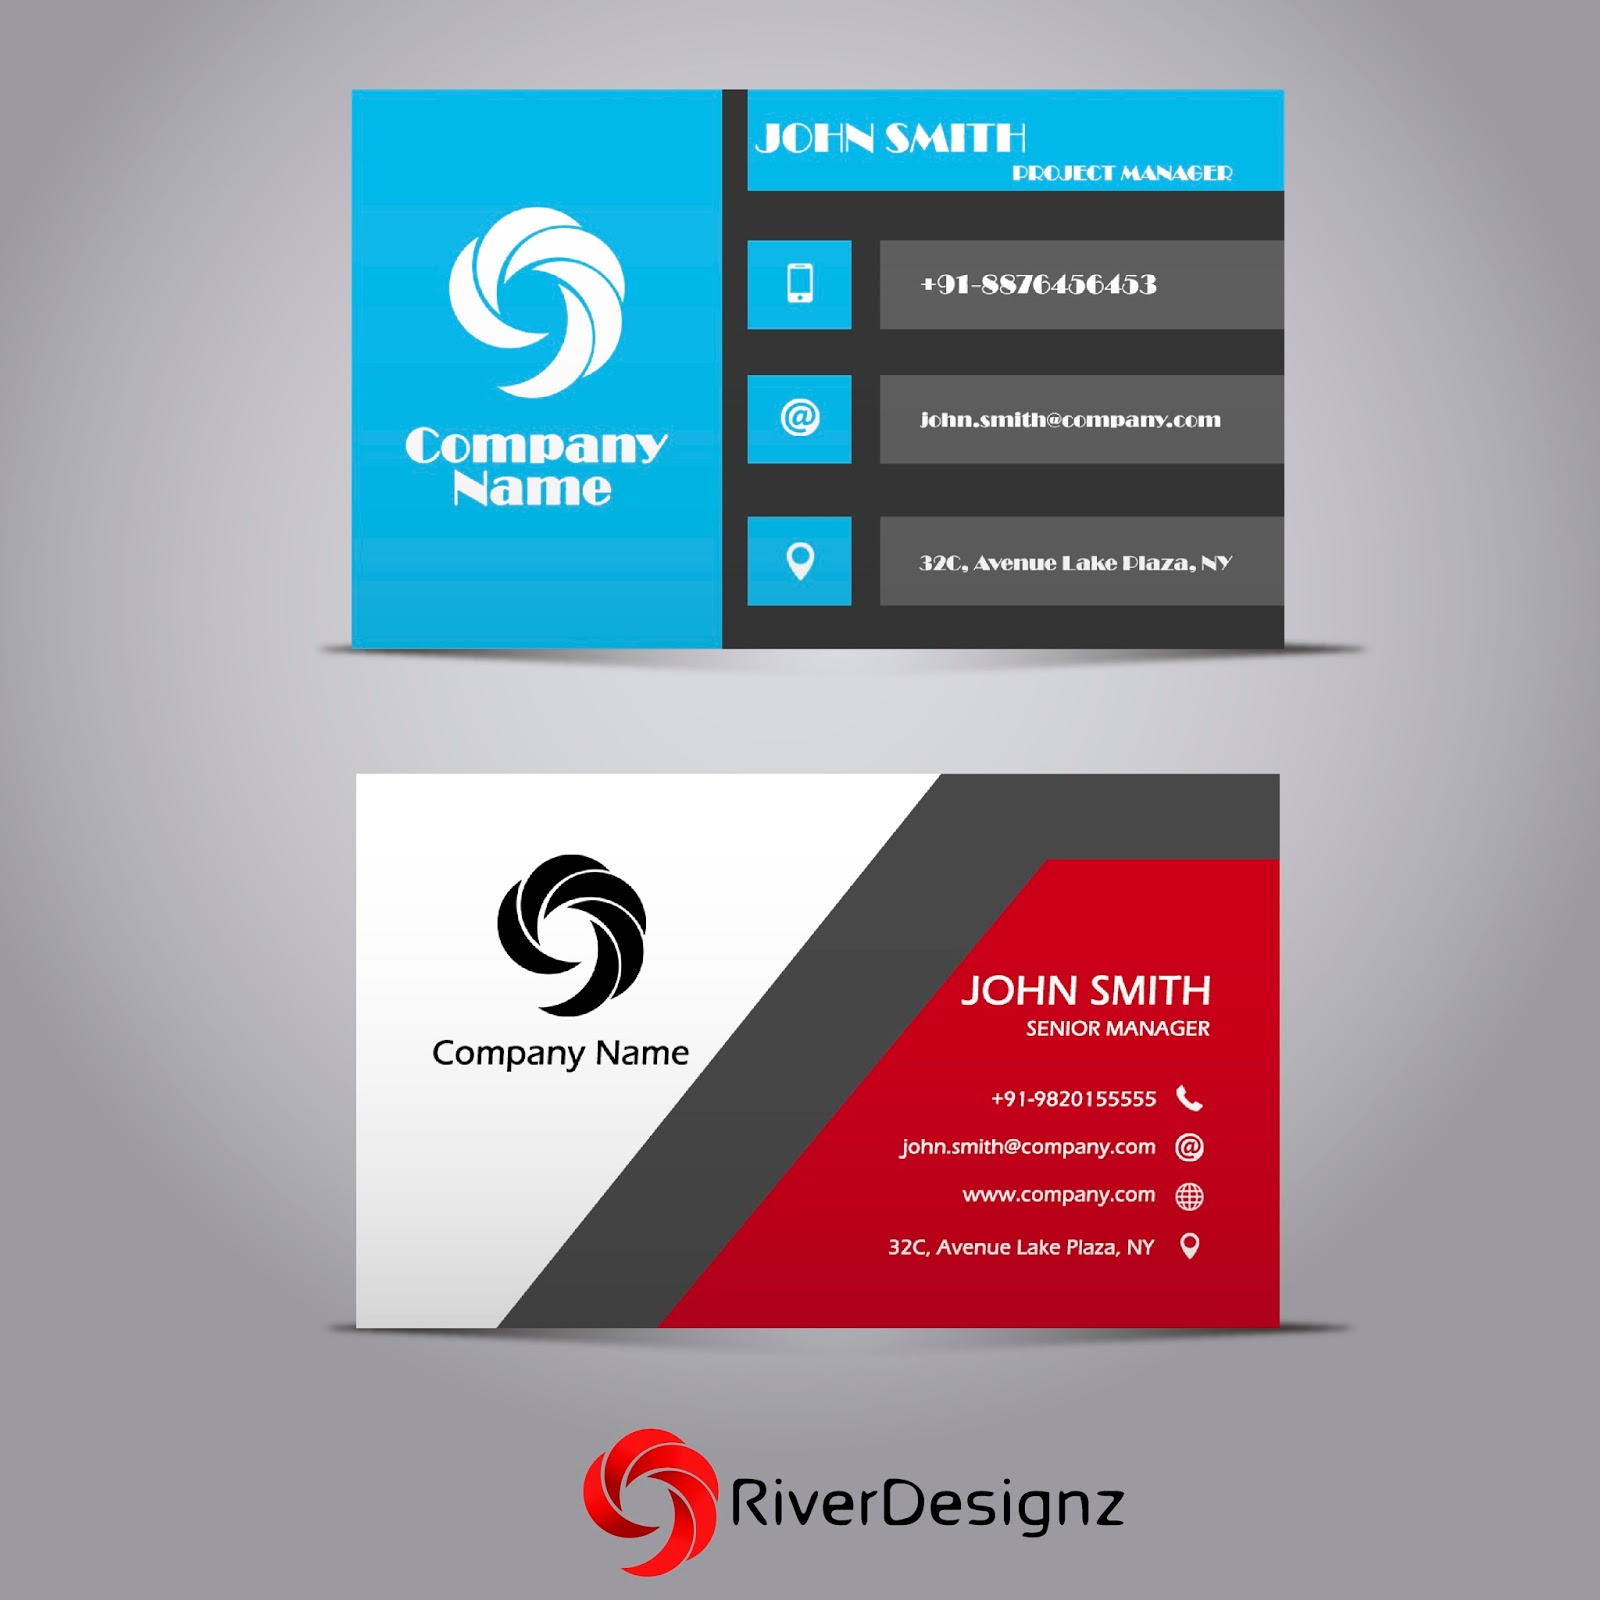 River designz creative modern professional business card designs colourmoves